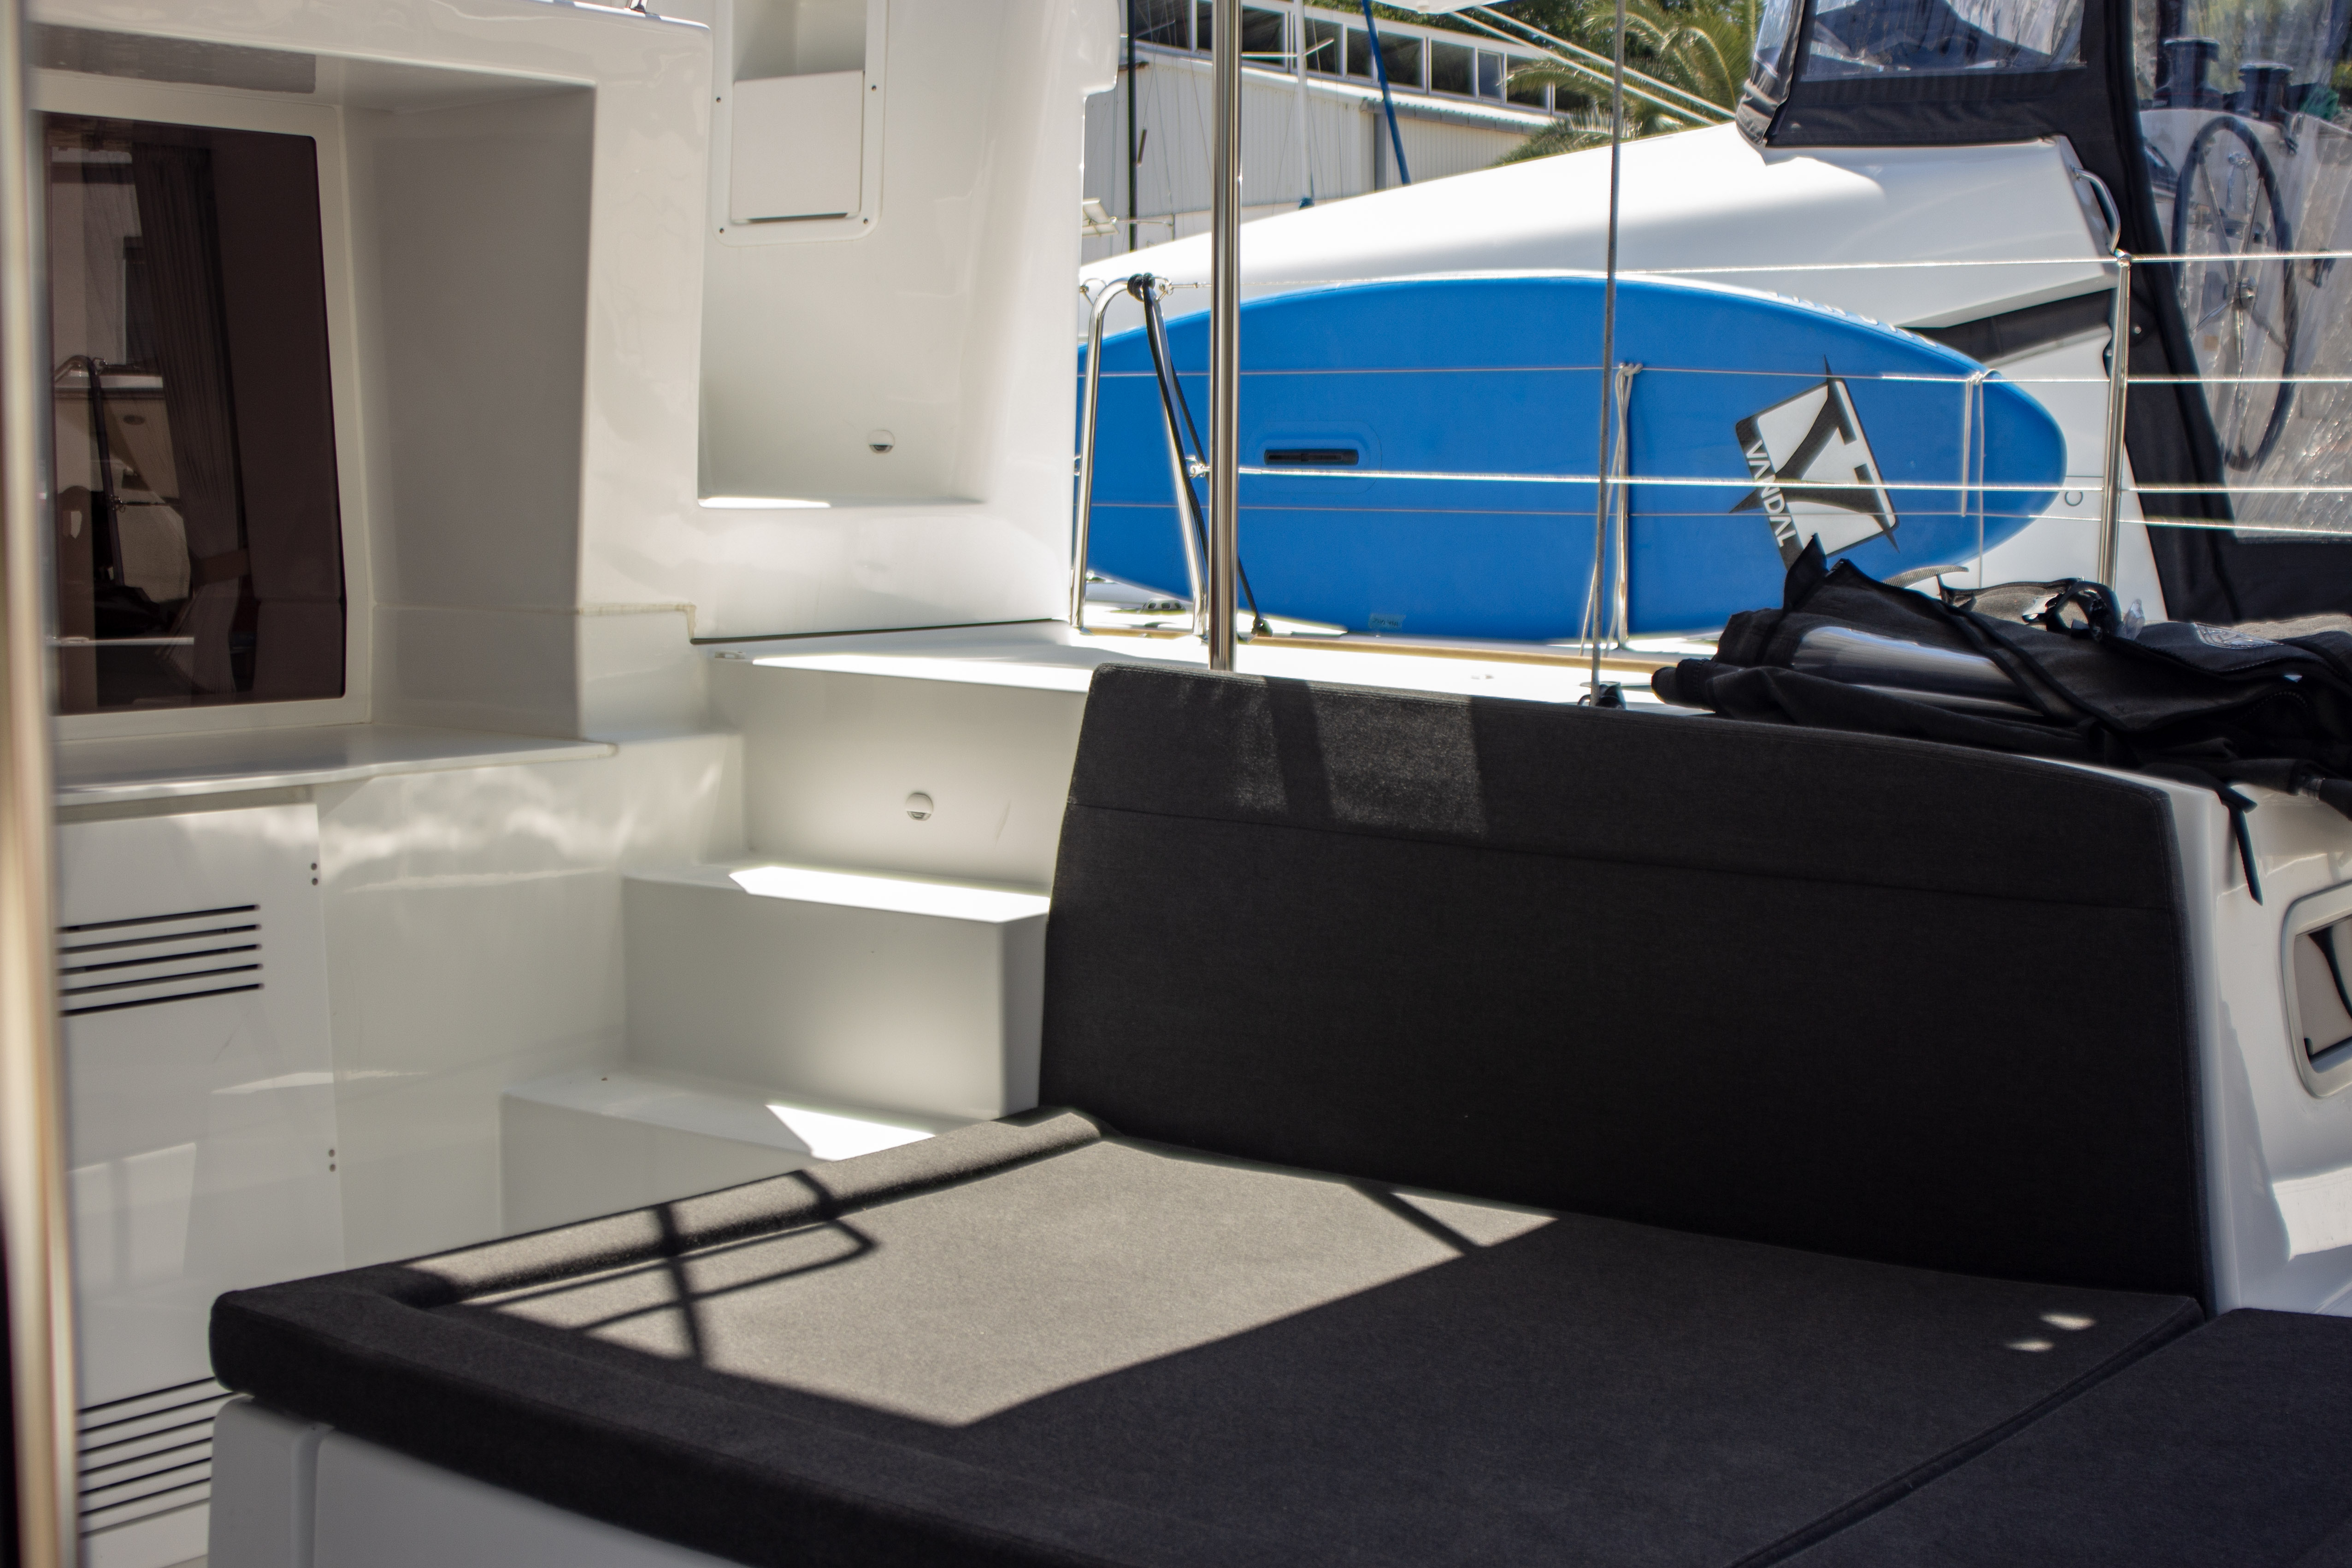 Lagoon 450 F (2018) equipped with generator, A/C ( (MALA MARE)  - 6